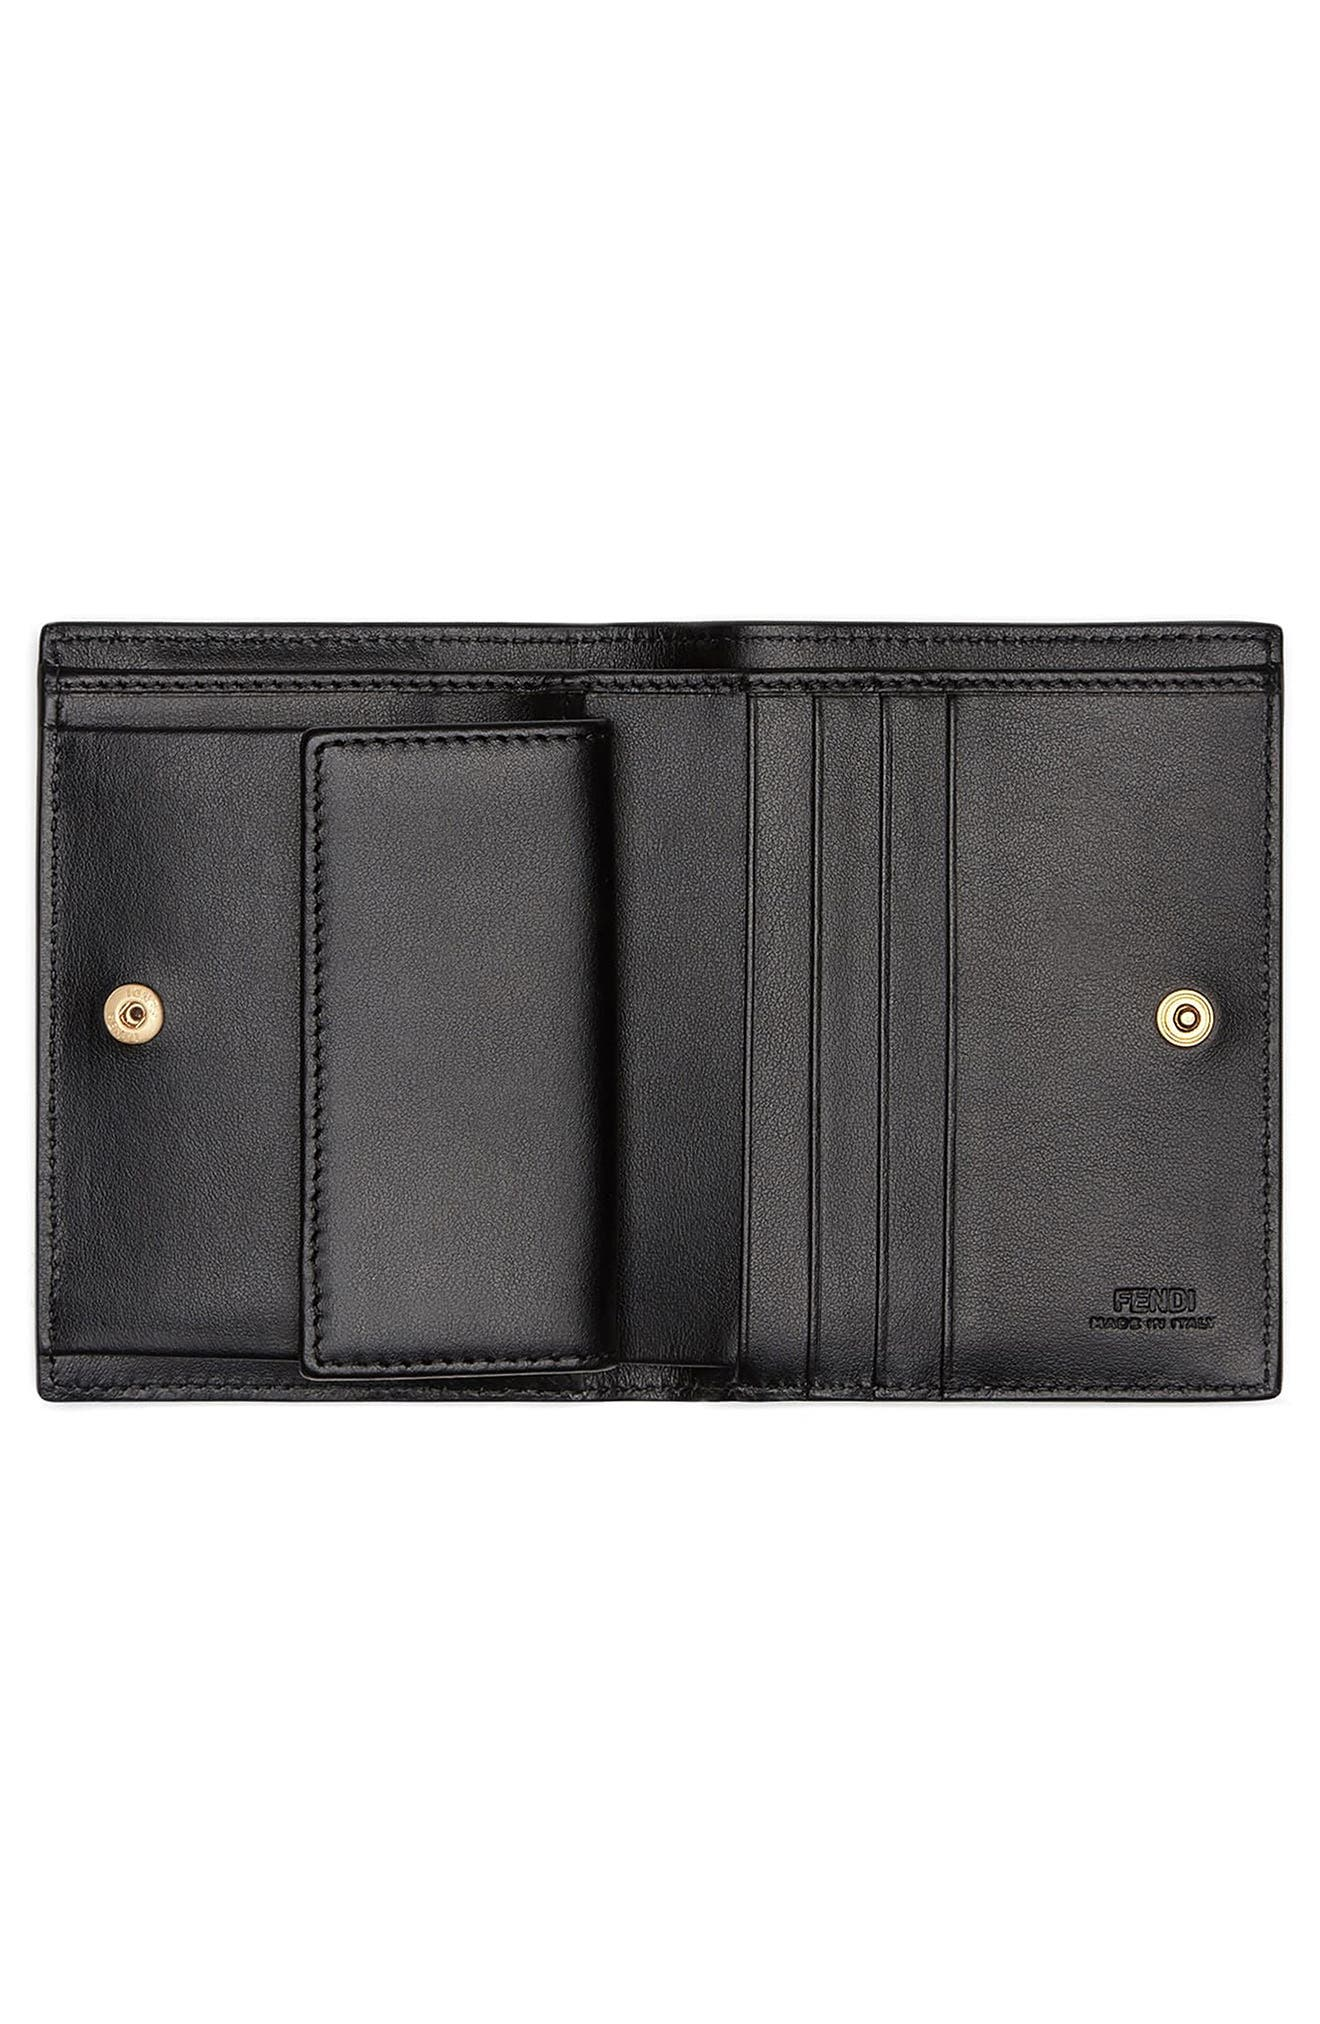 Logo Small Leather French Wallet,                             Alternate thumbnail 2, color,                             NERO/ ORO SOFT